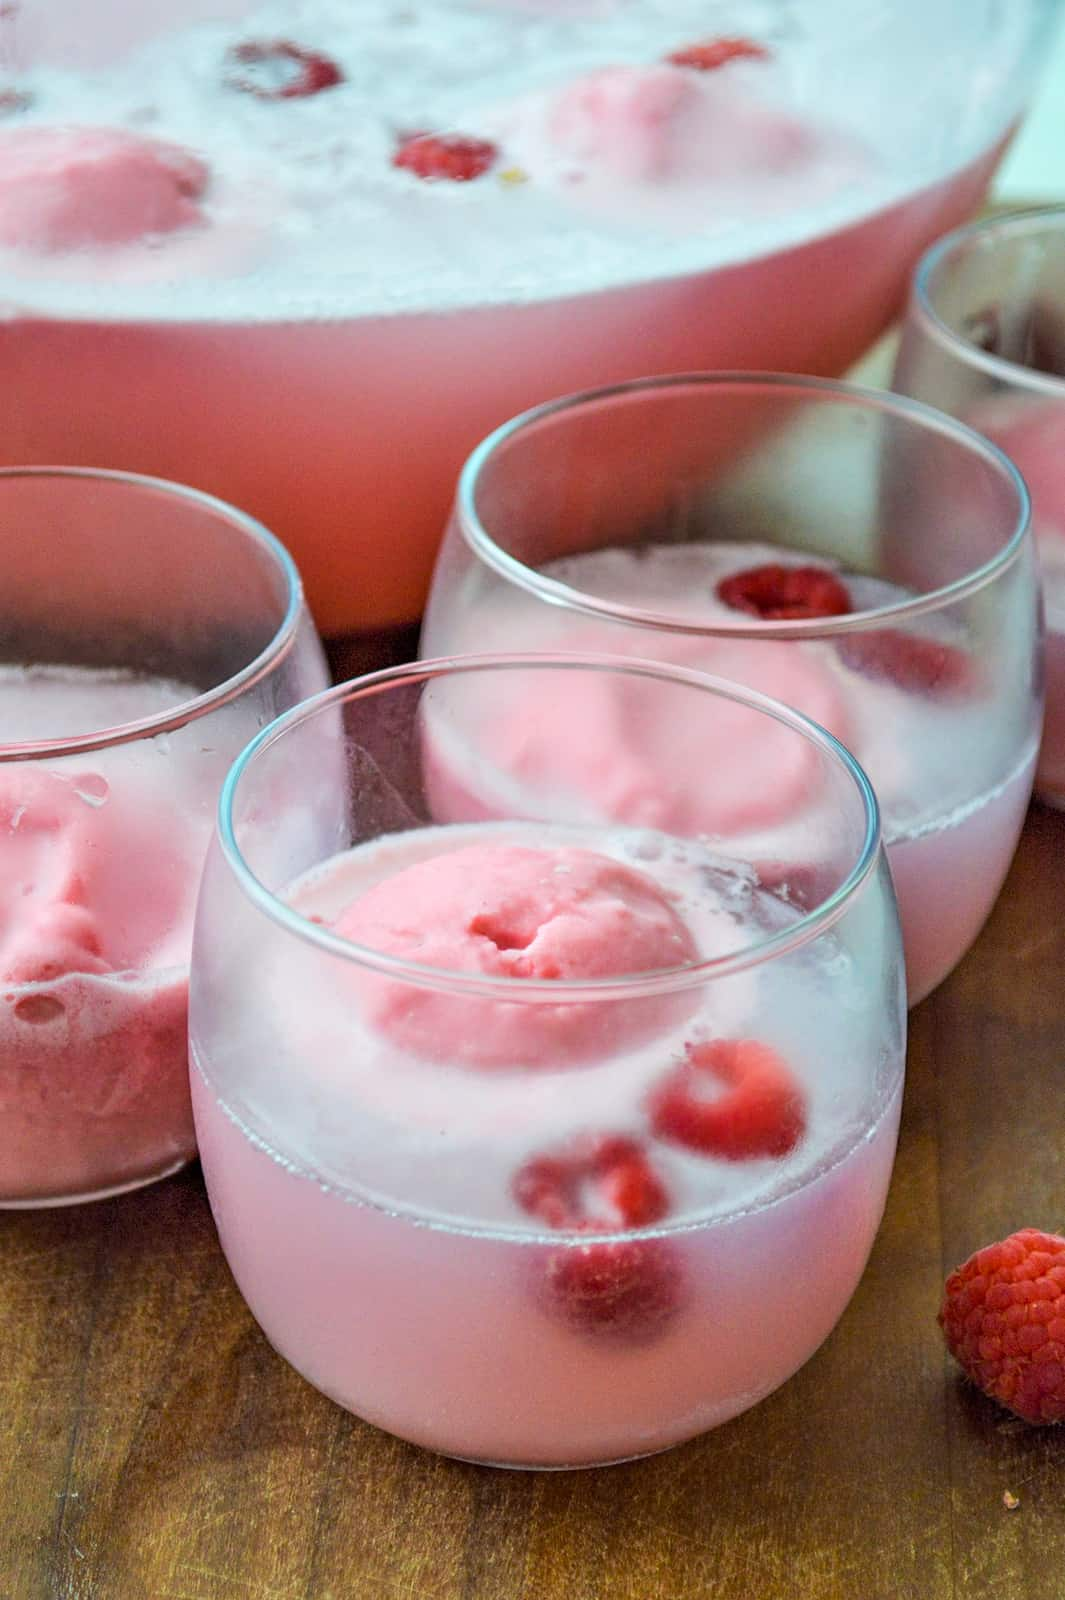 Close up of Punch in glass with raspberries